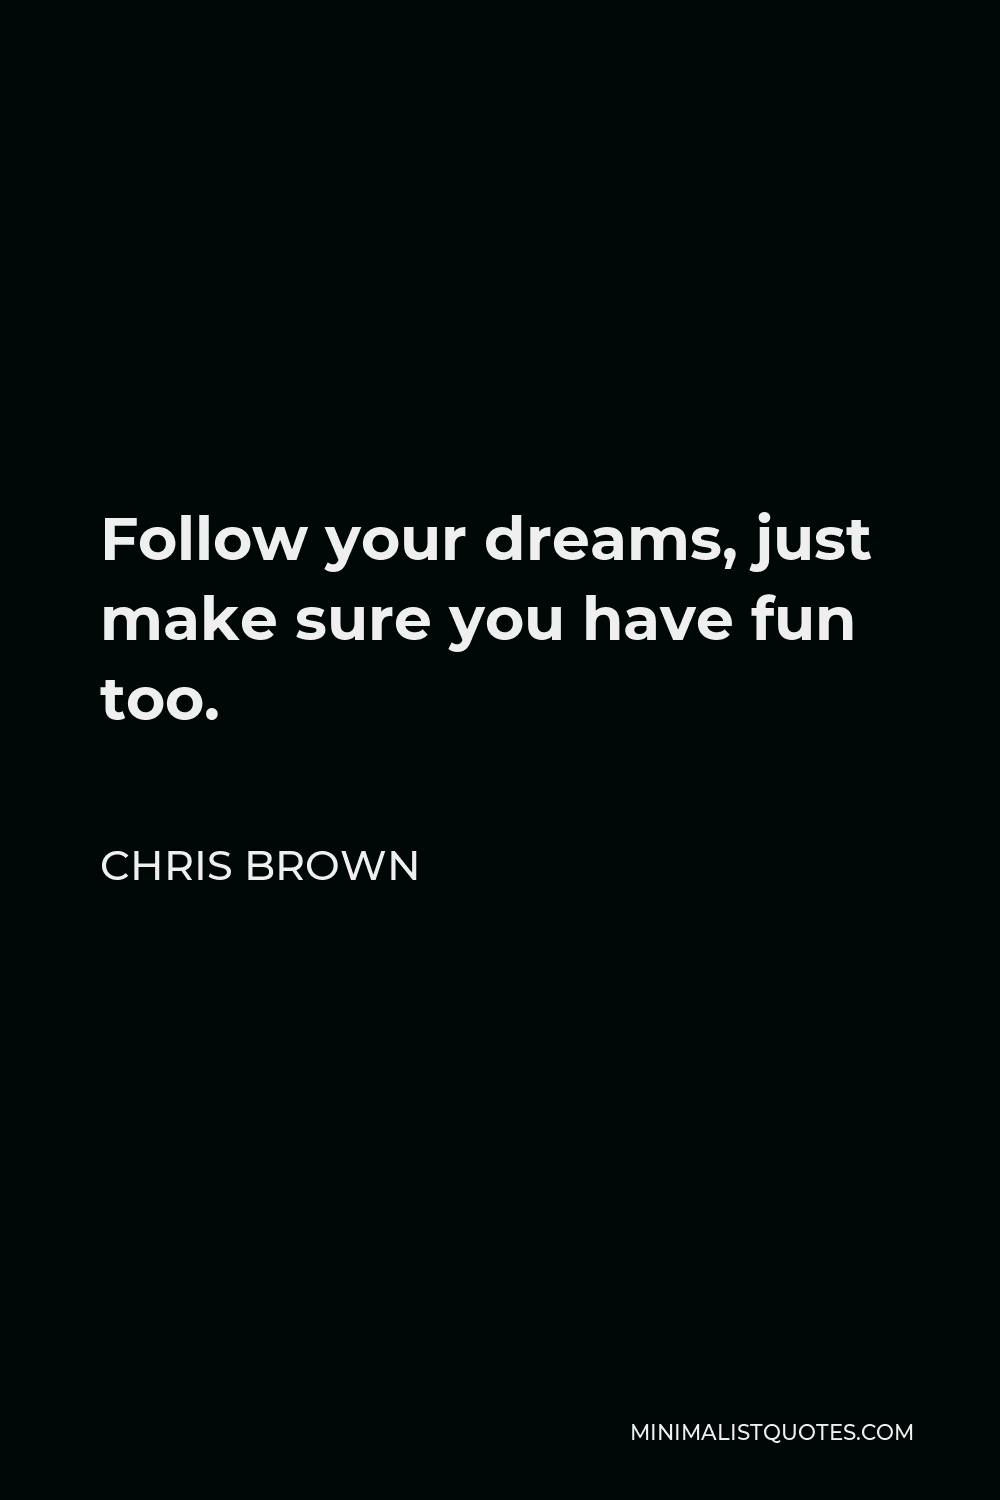 Chris Brown Quote - Follow your dreams, just make sure you have fun too.